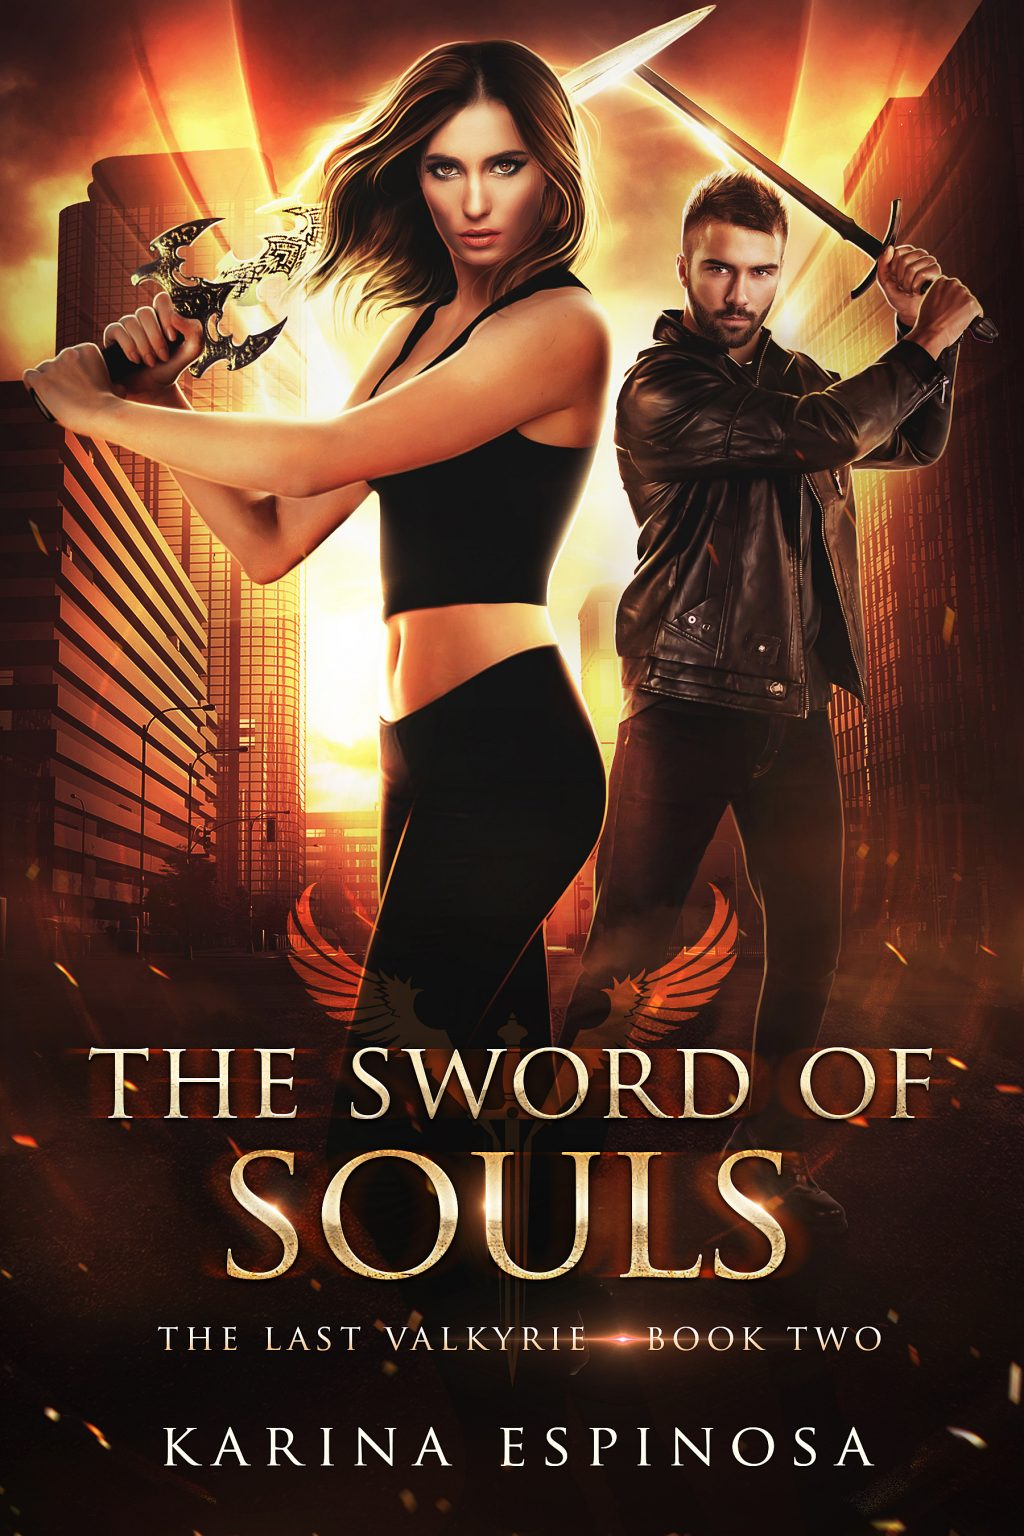 The Sword of Souls (The Last Valkyrie #2) by Karina Espinosa